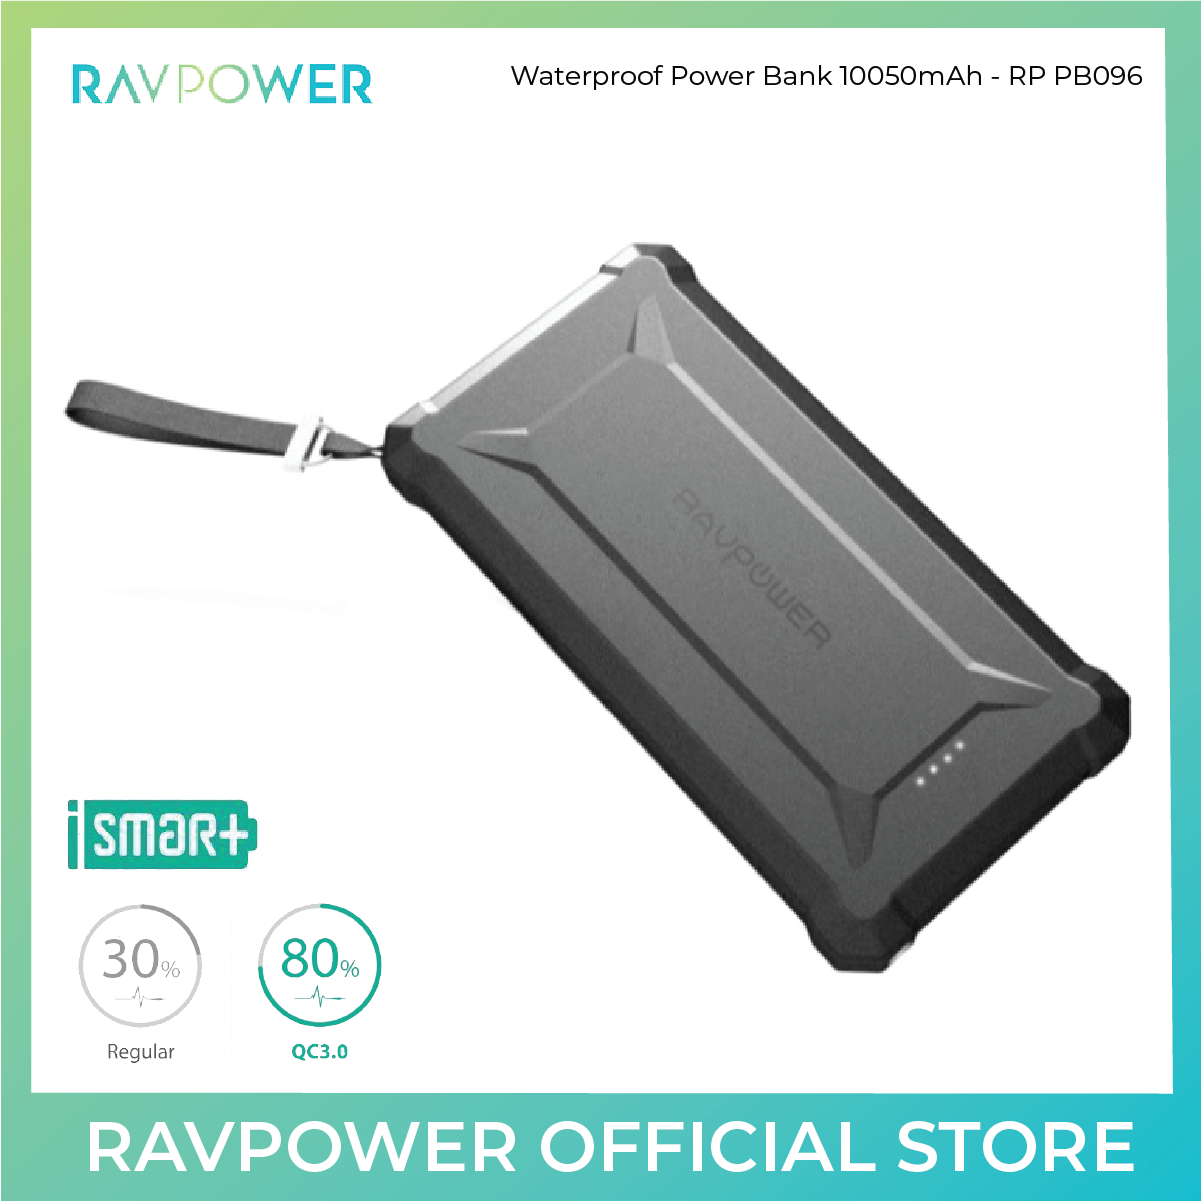 RAVPower Waterproof Power Bank - 10050mAh PD 18W+QC3.0 - RP-PB096